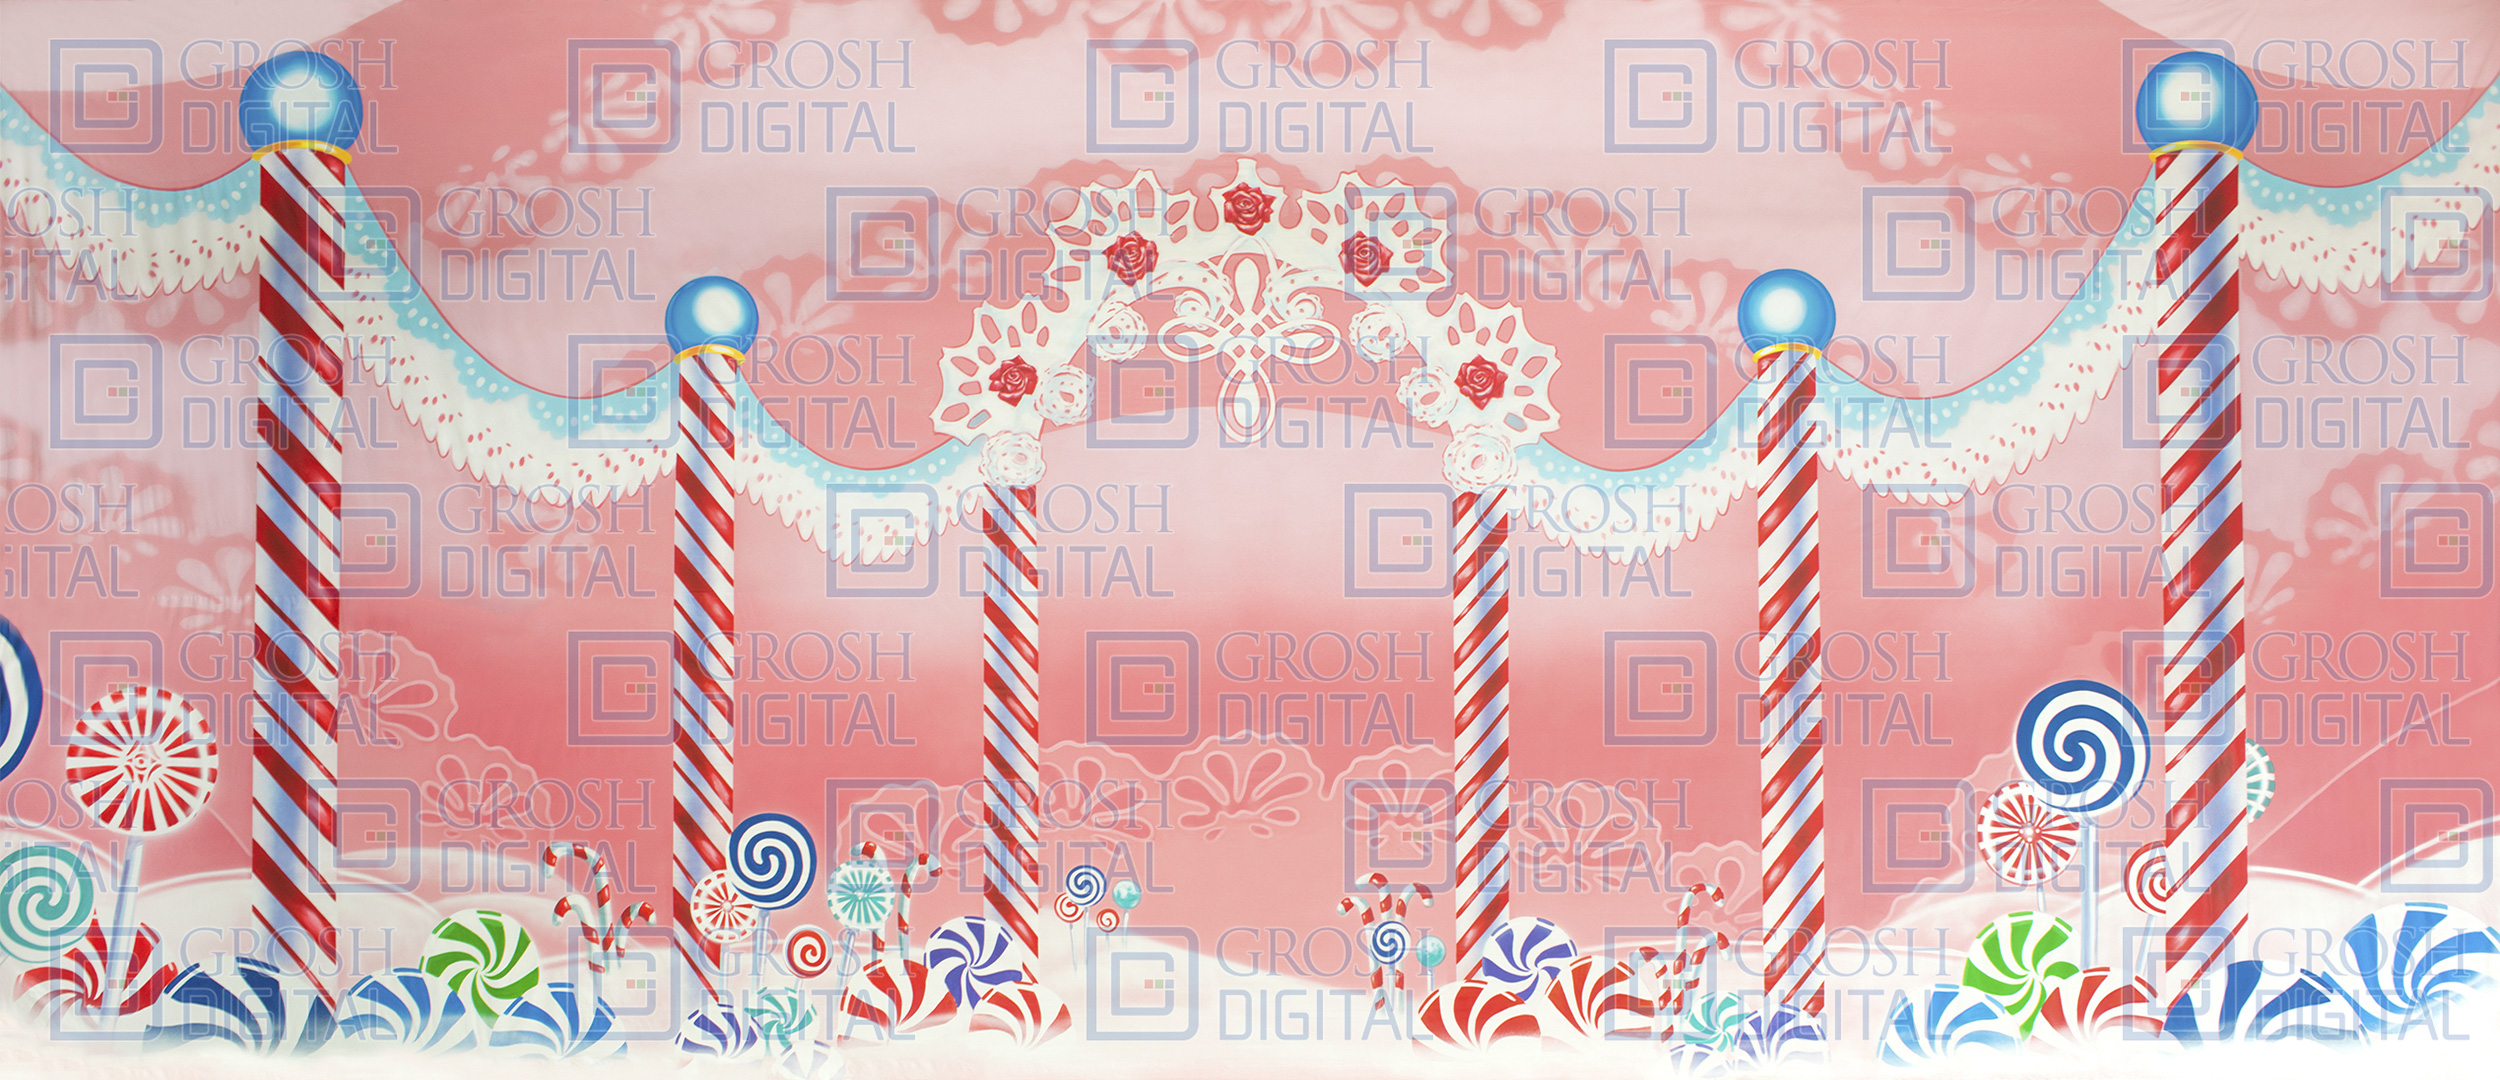 Lace Candyland Projected Backdrop for Dance, Land of the Sweets, Nutcracker